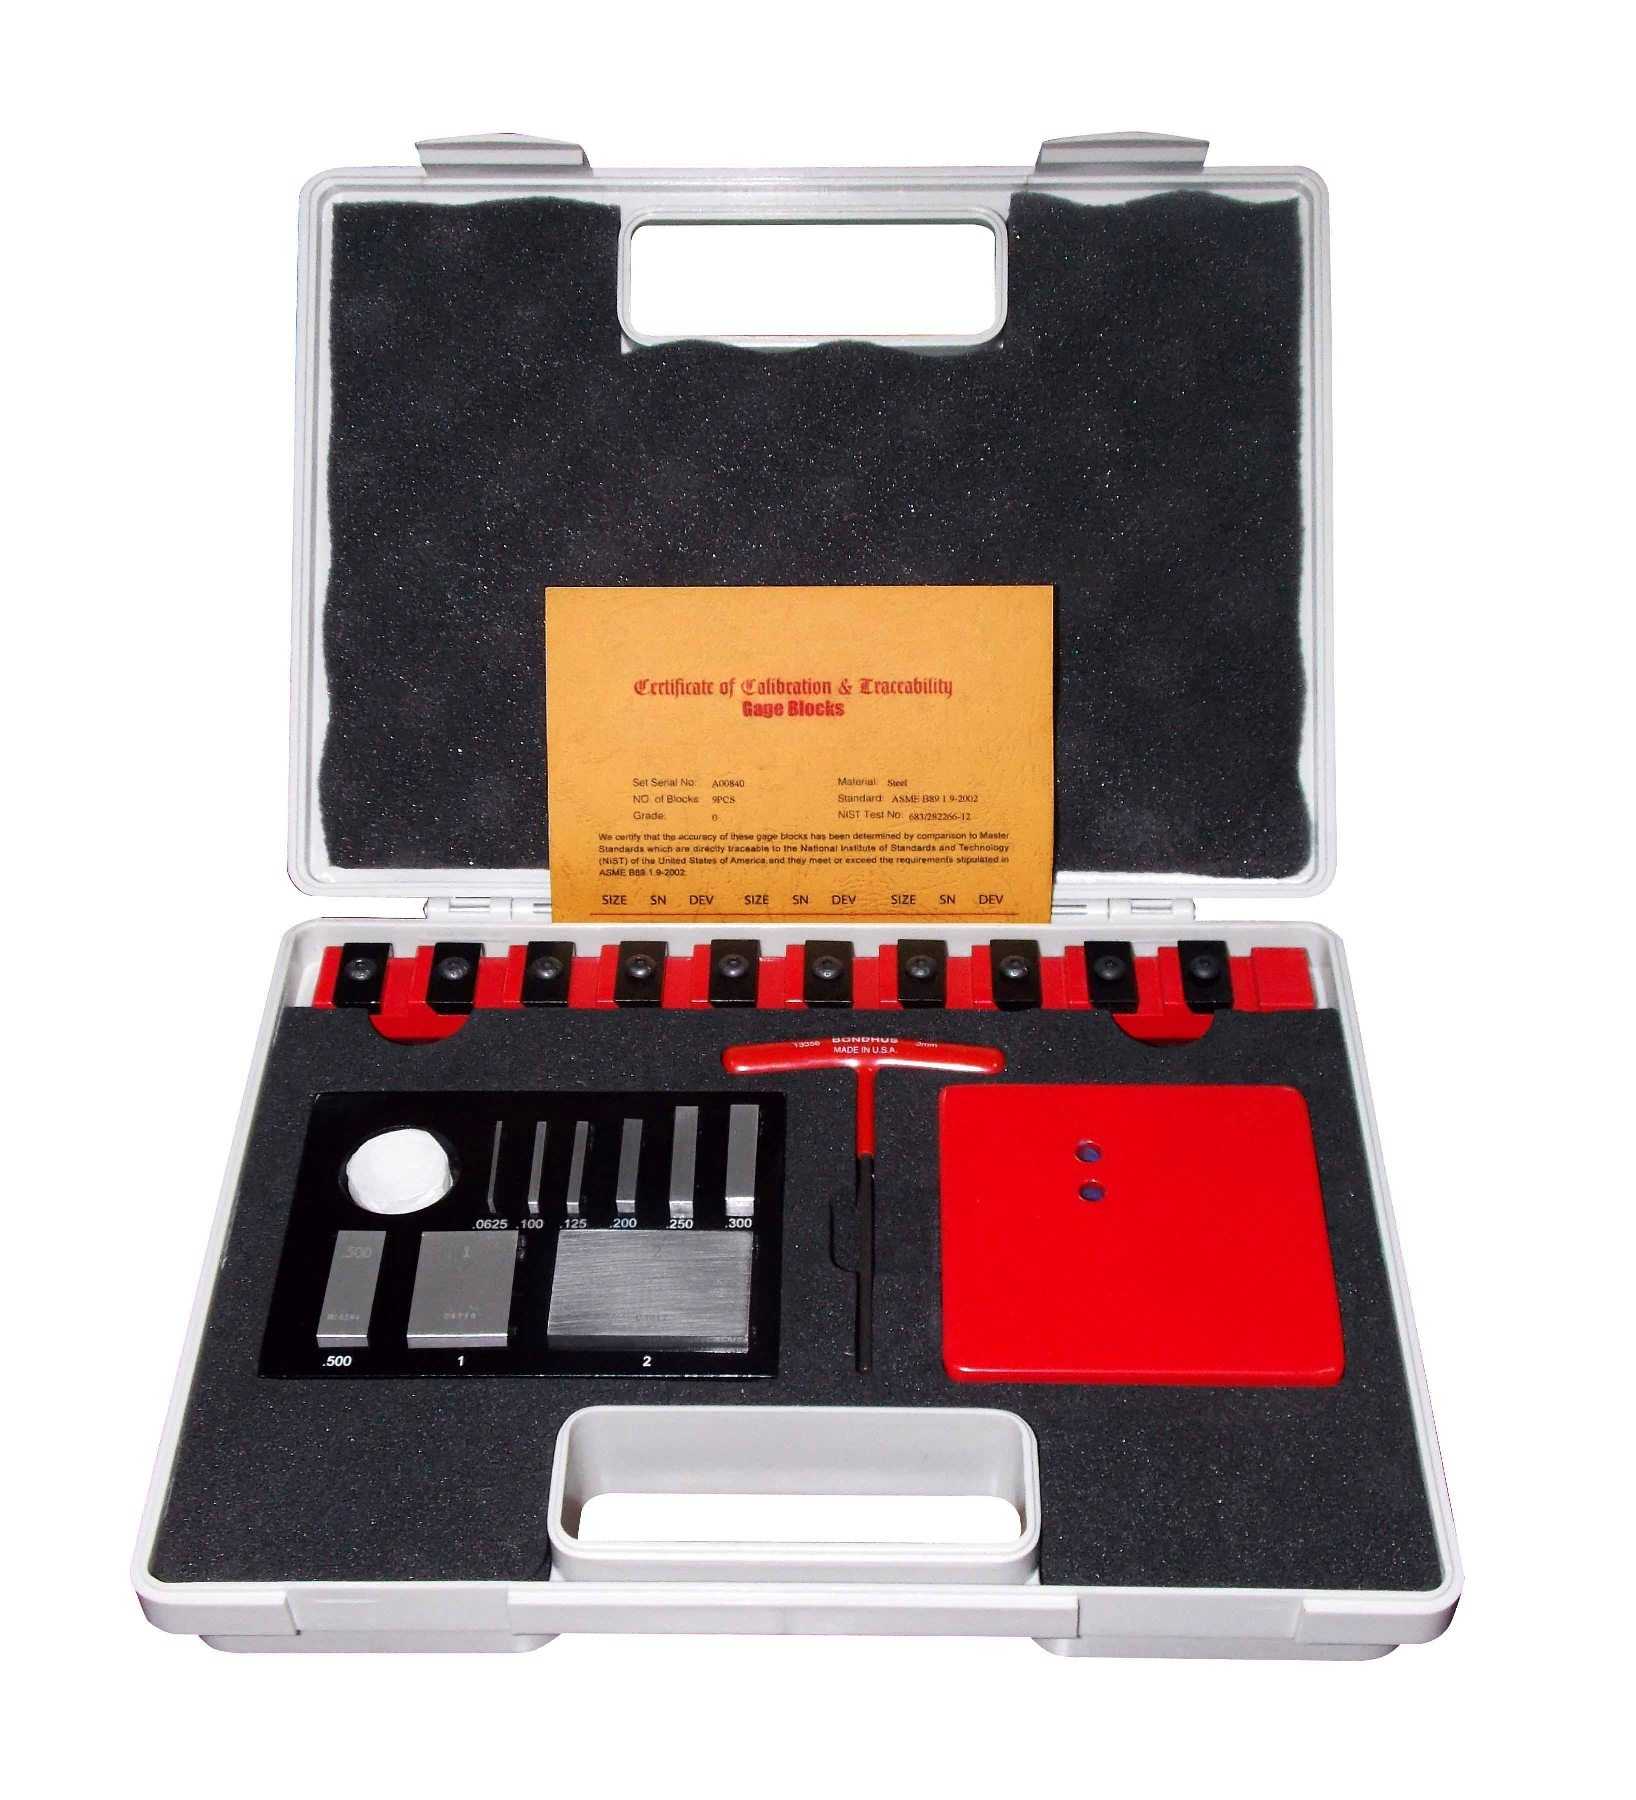 10 PIECE SETTING MASTERS MEASURING TOOLS - INCH | 4101-0036